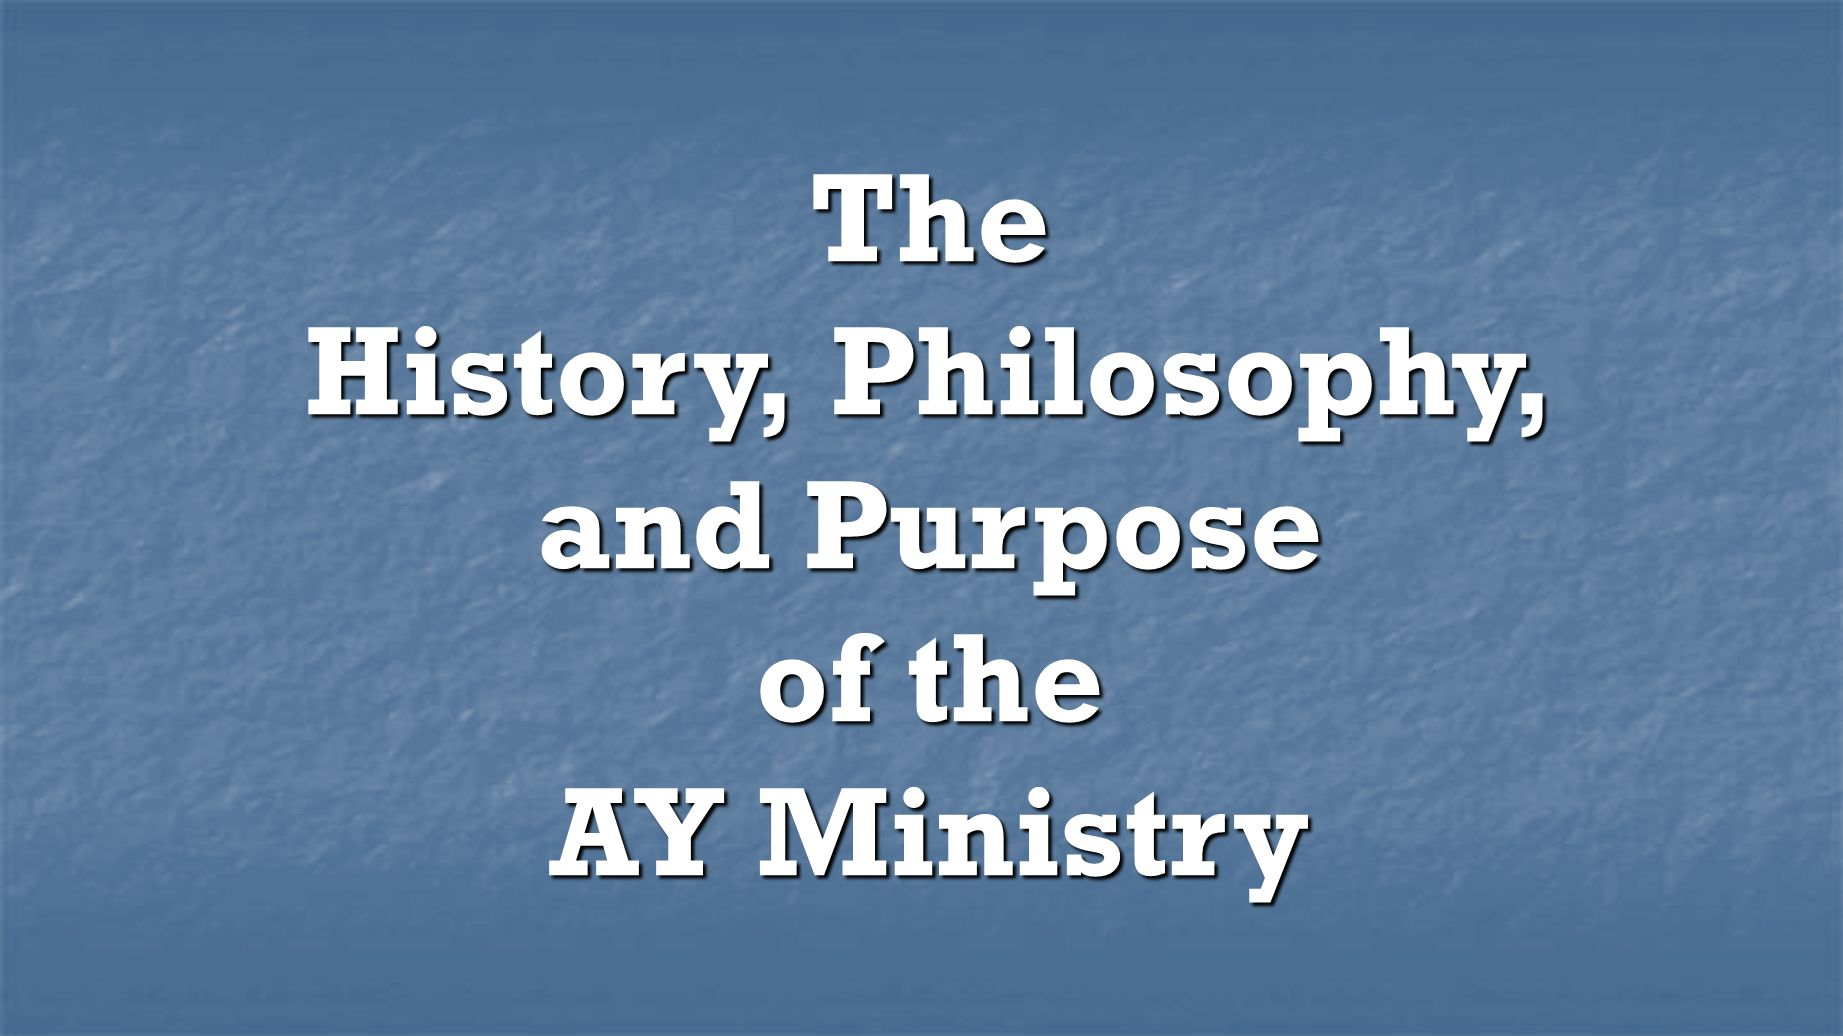 The History of the AY Ministry